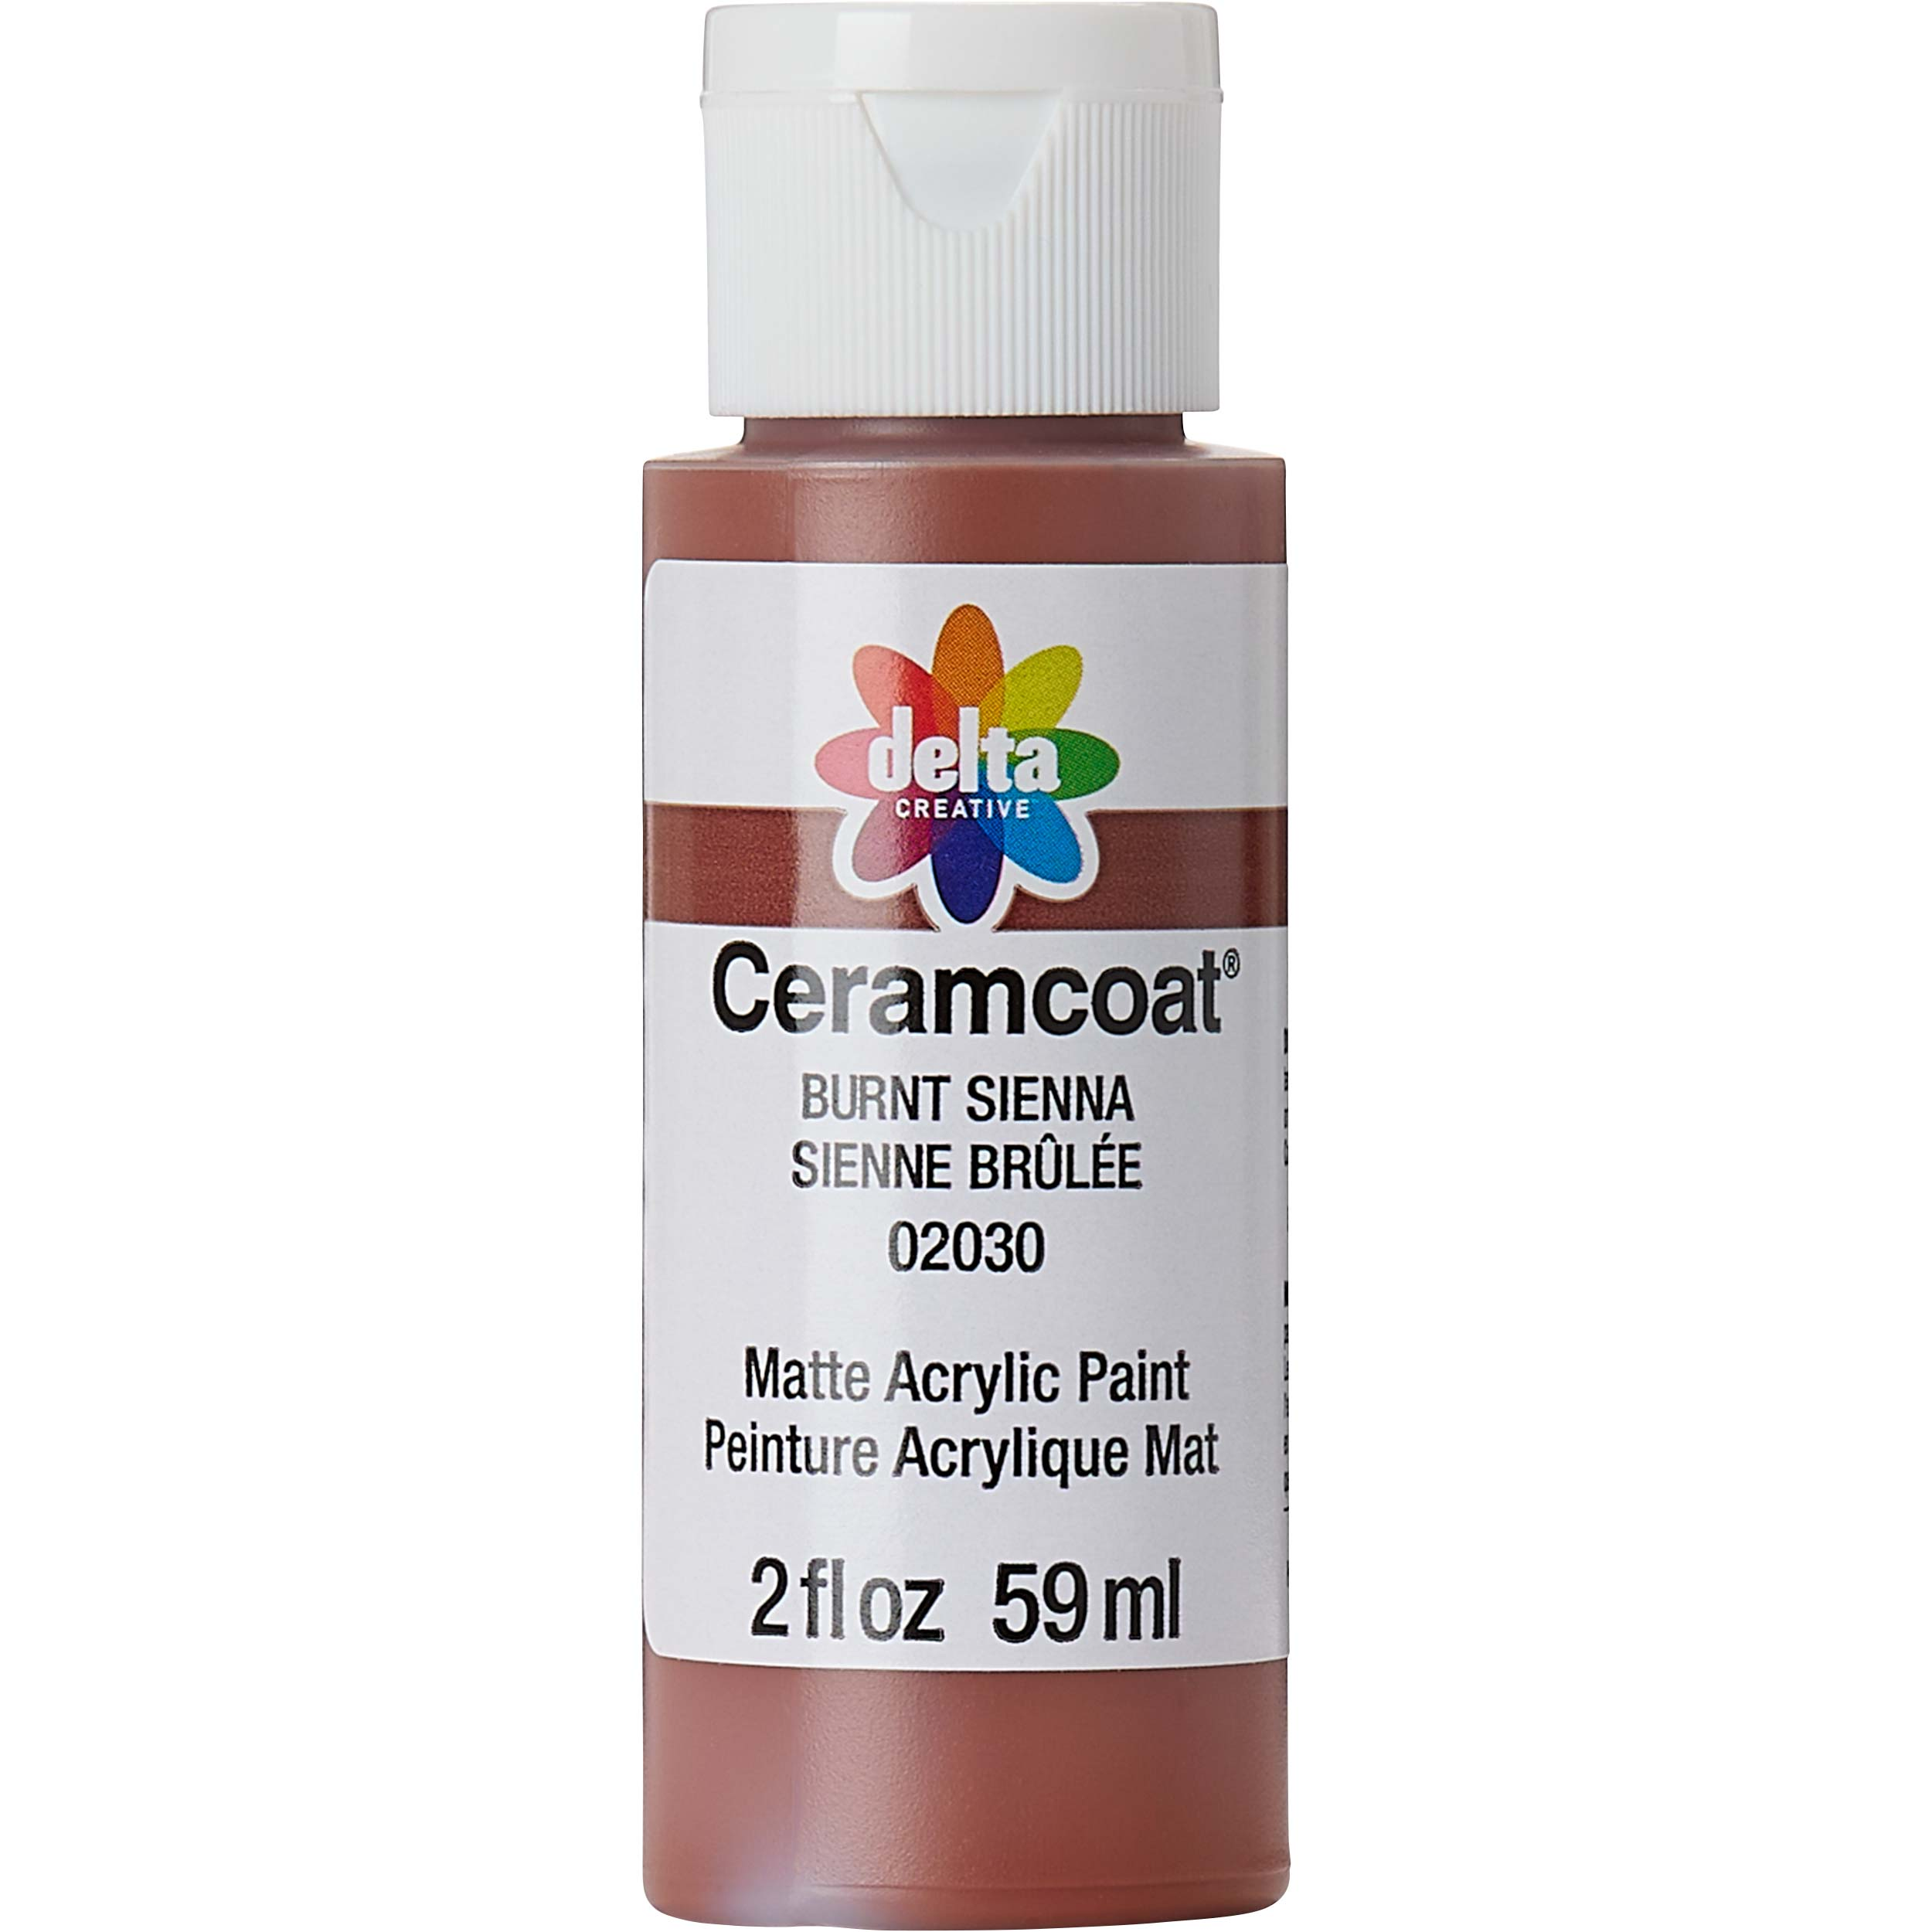 Delta Ceramcoat ® Acrylic Paint - Burnt Sienna, 2 oz. - 020300202W